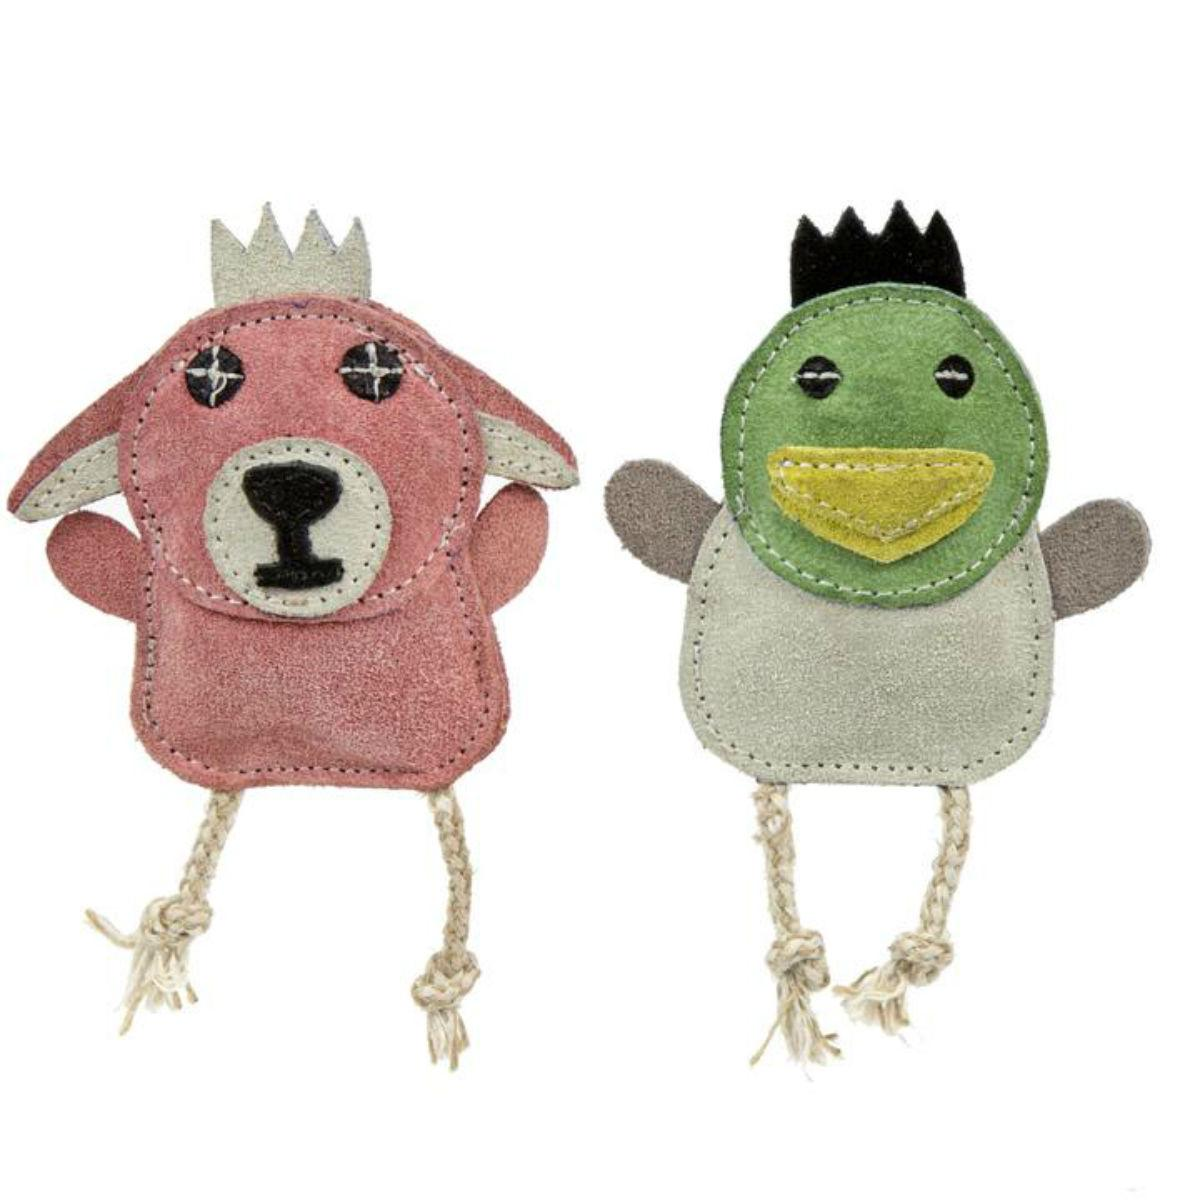 HuggleHounds Naturals Wee Buddie Dog Toy - Duck and Bunny